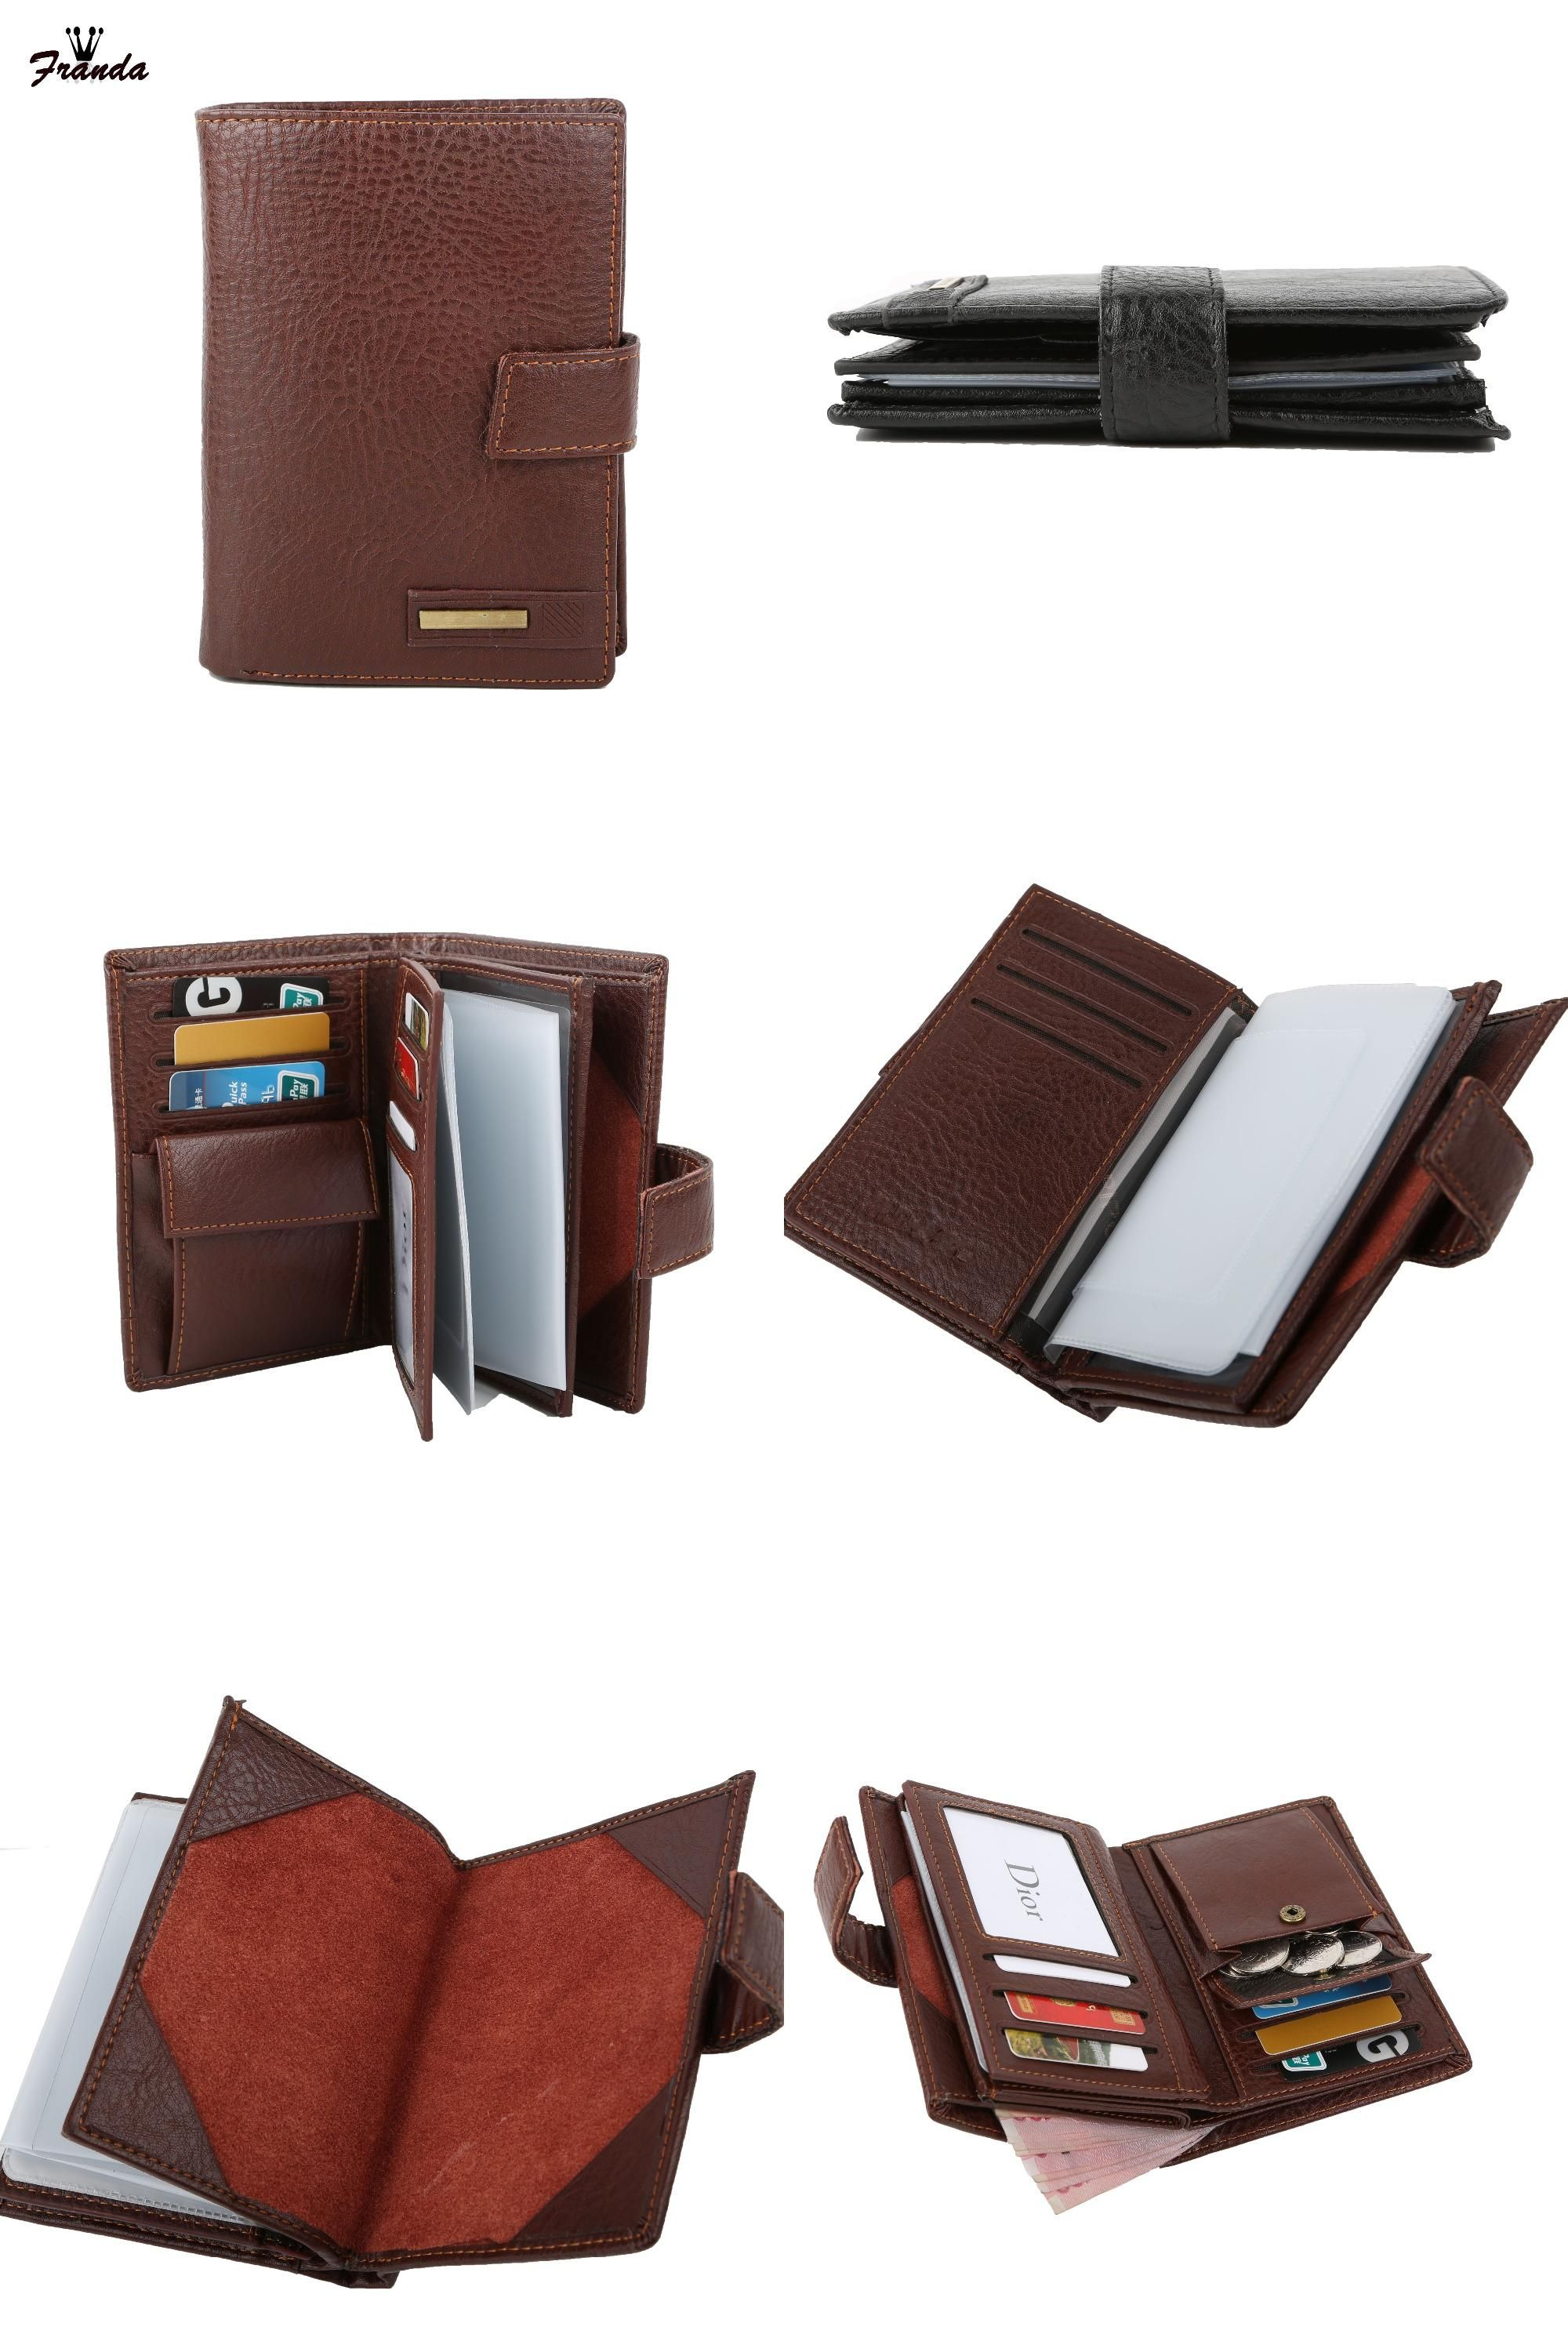 b8bb0ef30e71 [Visit to Buy] Leather Passport Cover Driver's License Cover Document Men  Travel Wallet Credit Card Holder Cover on the Passport Case organizer # ...